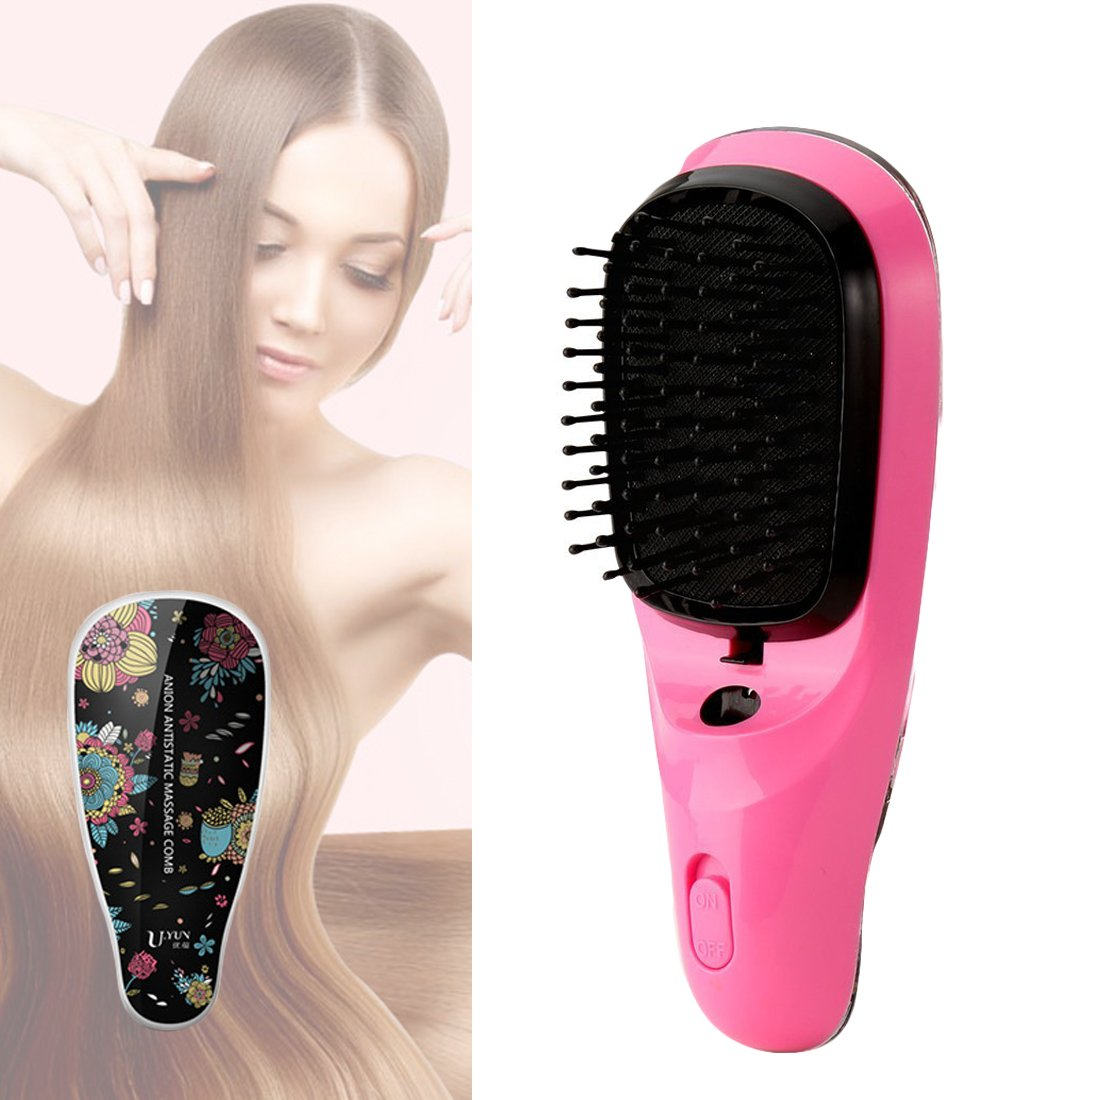 Lookathot Mini Portable Hair Straightener Brush Detangling USB Rechargeable Hair Styling Comb Anion Hair Massager Travel Light Weight (Black) by Lookathot (Image #1)